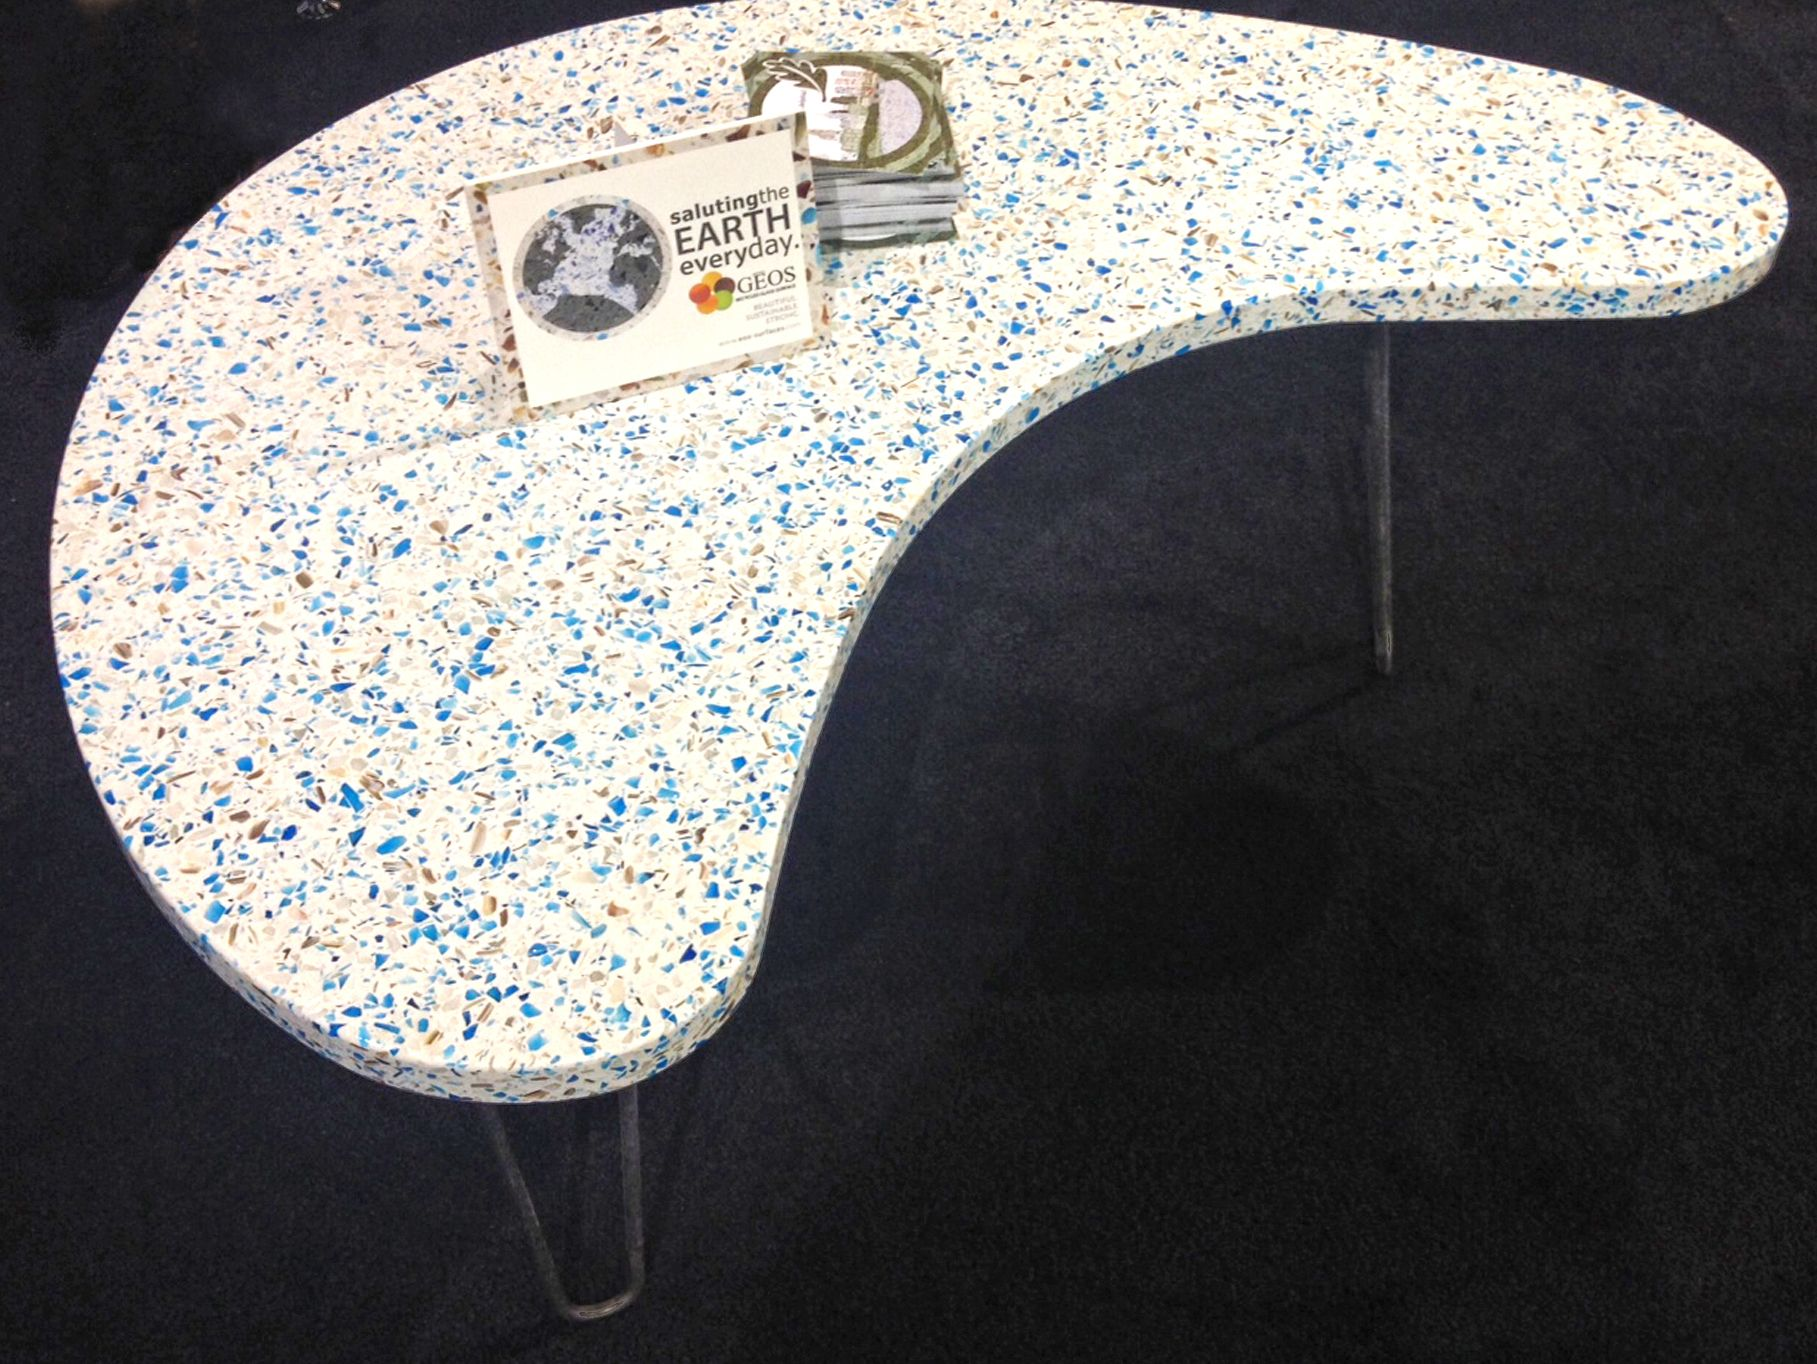 This Table Features Geos Recycled Gl Surface In The Striking